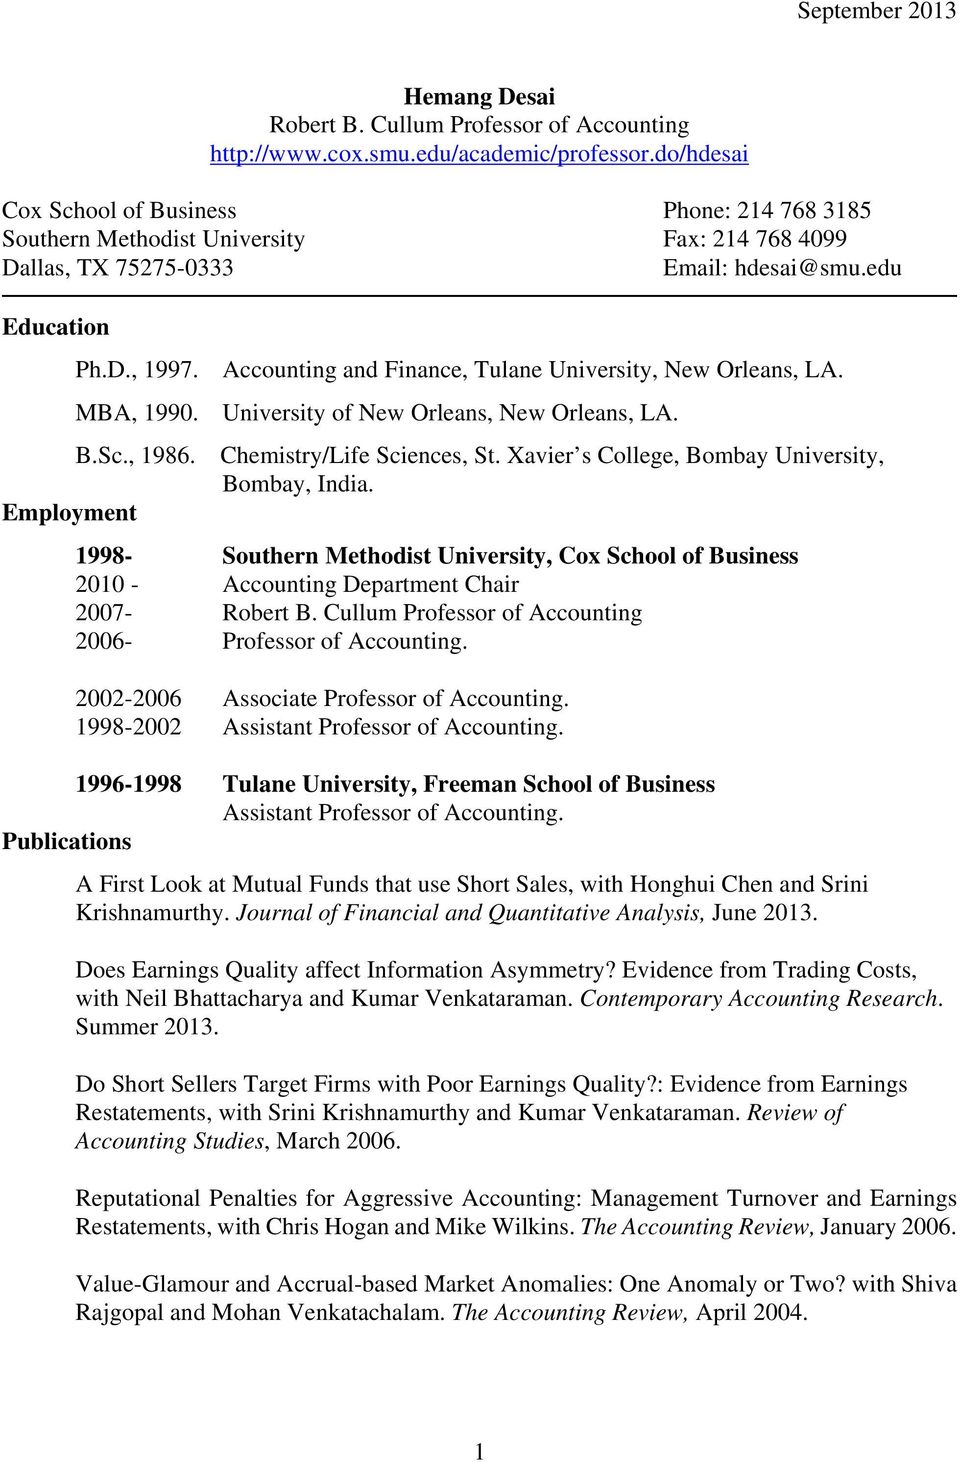 analysis of the accrual anomaly Agency theory of overvalued equity as an explanation for accrual anomaly working paper, massachusetts institute of technology (mit) sloan school of management kraft, a, a leone, and c wasley 2006 an analysis of the theories and explanations offered for the mispricing of accruals and accrual components.